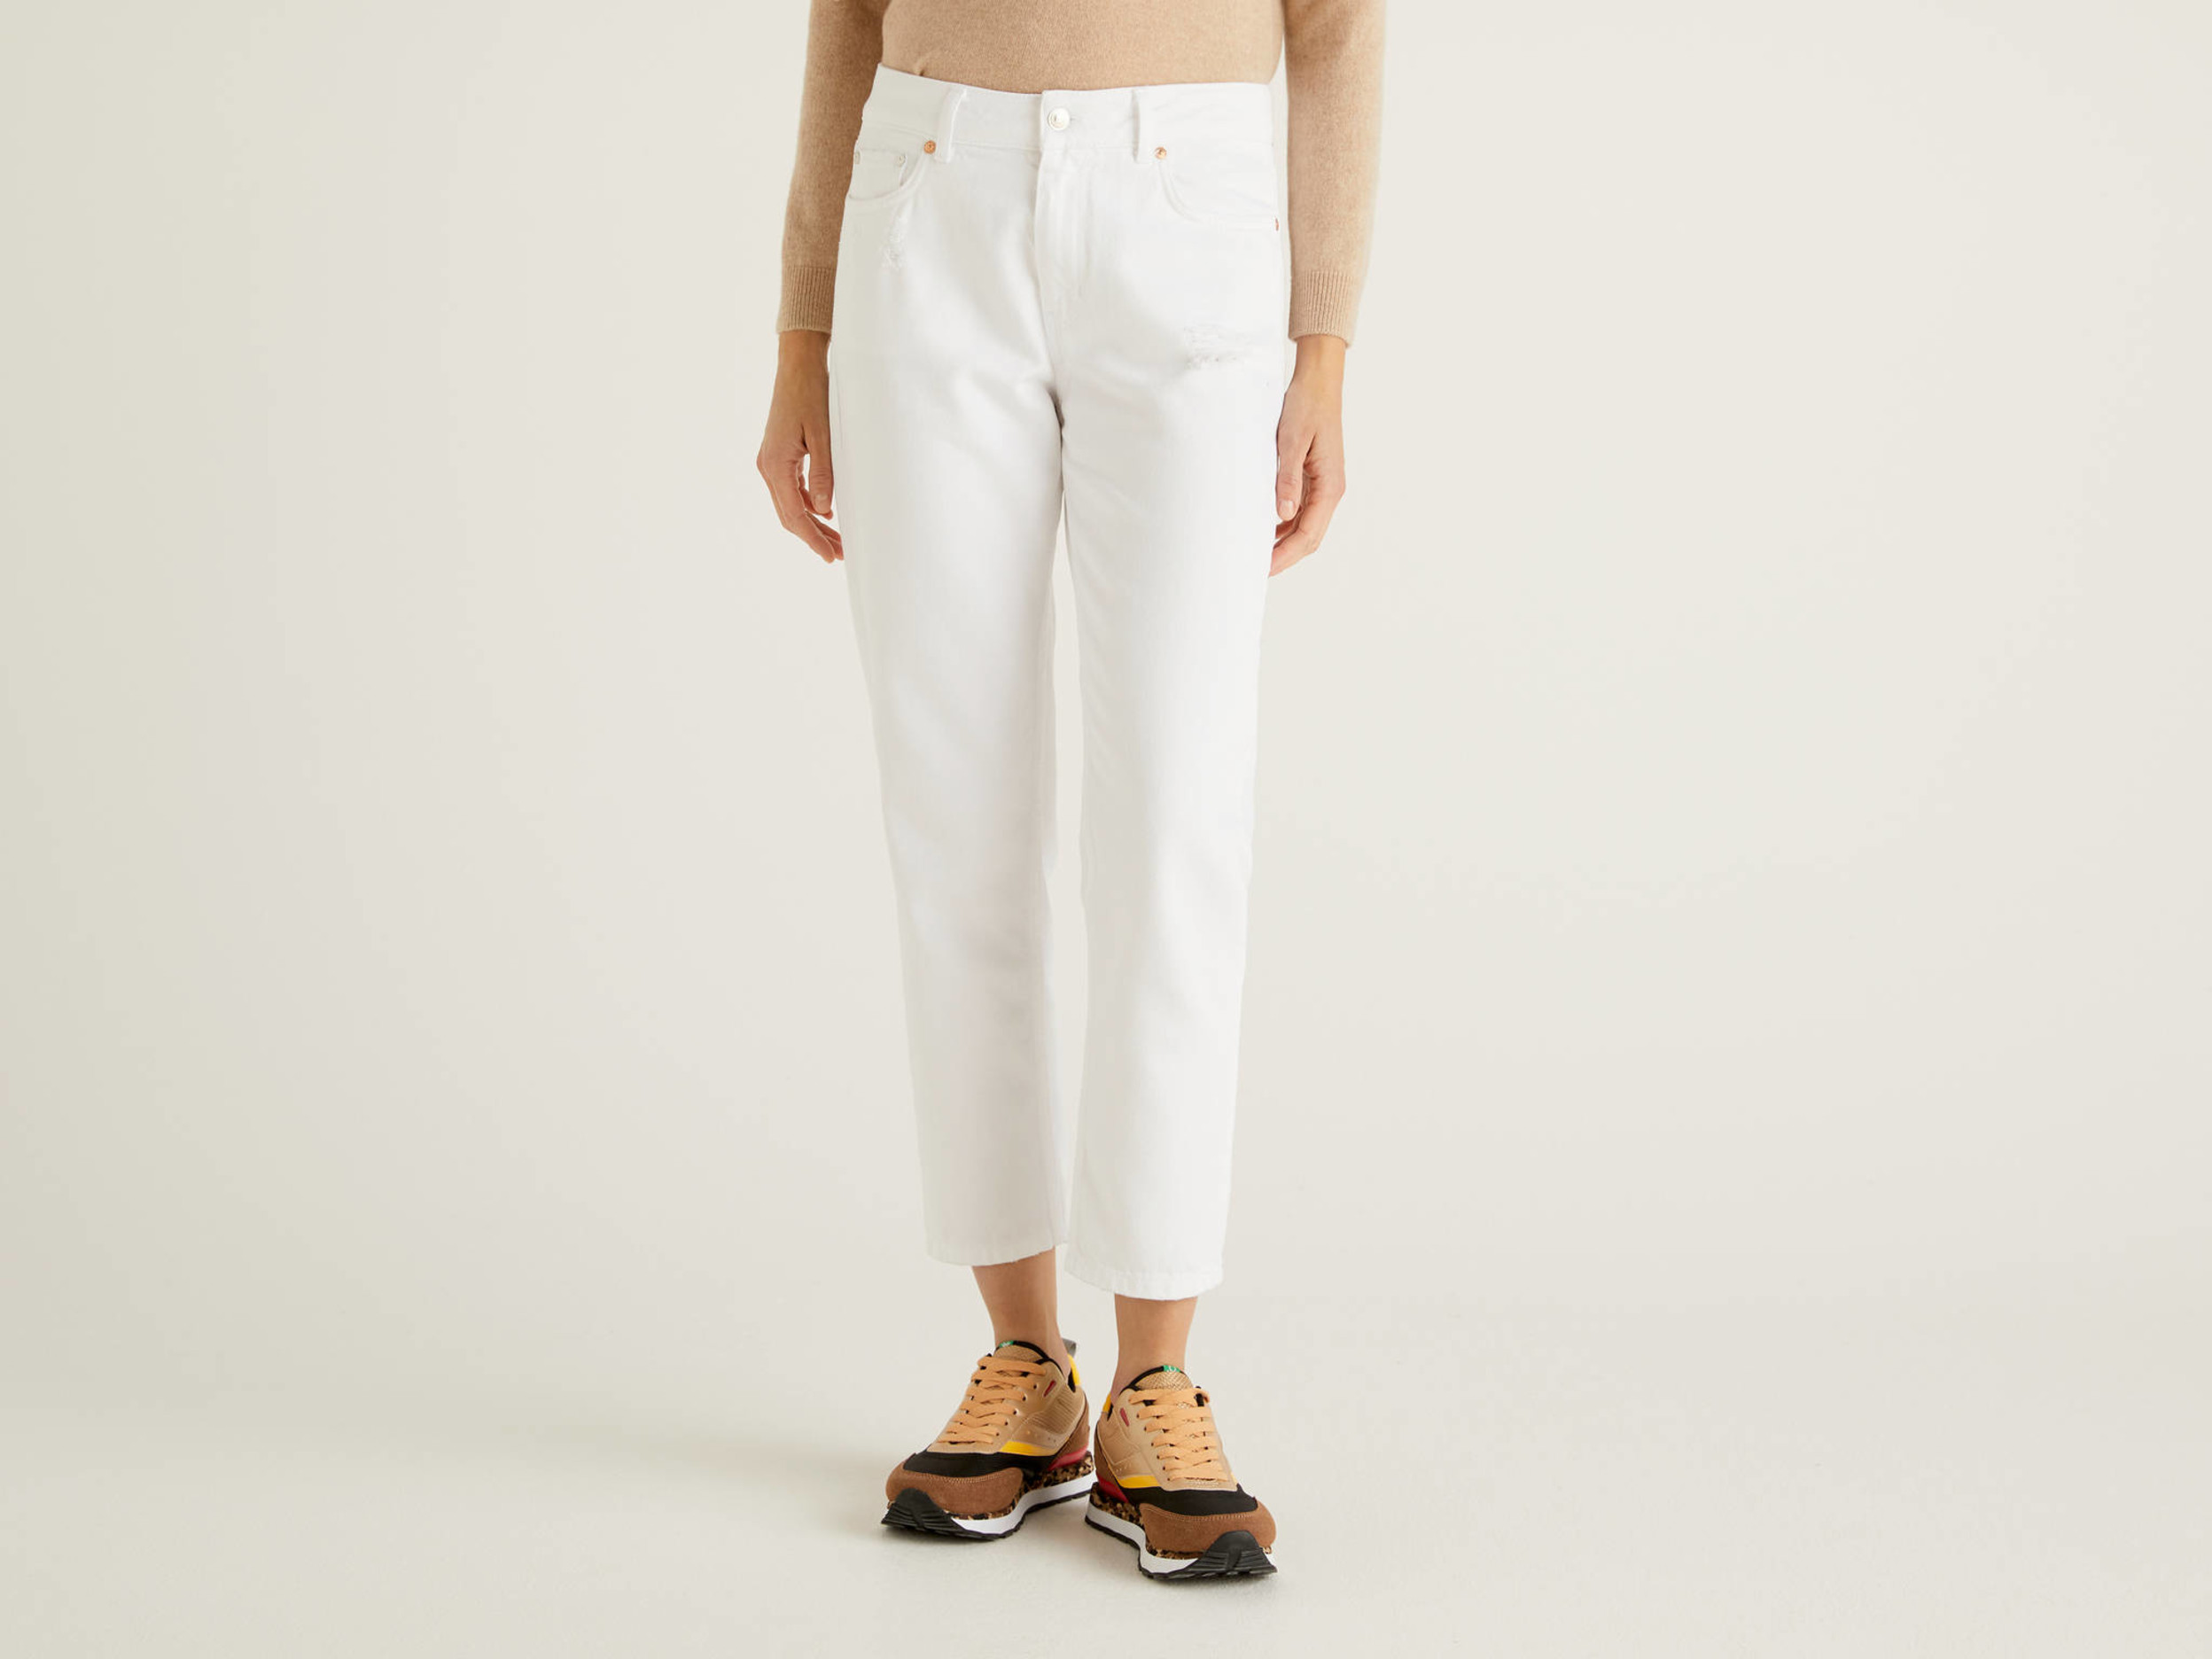 Benetton, Jeans Bianchi Con Rotture, Bianco, Donna